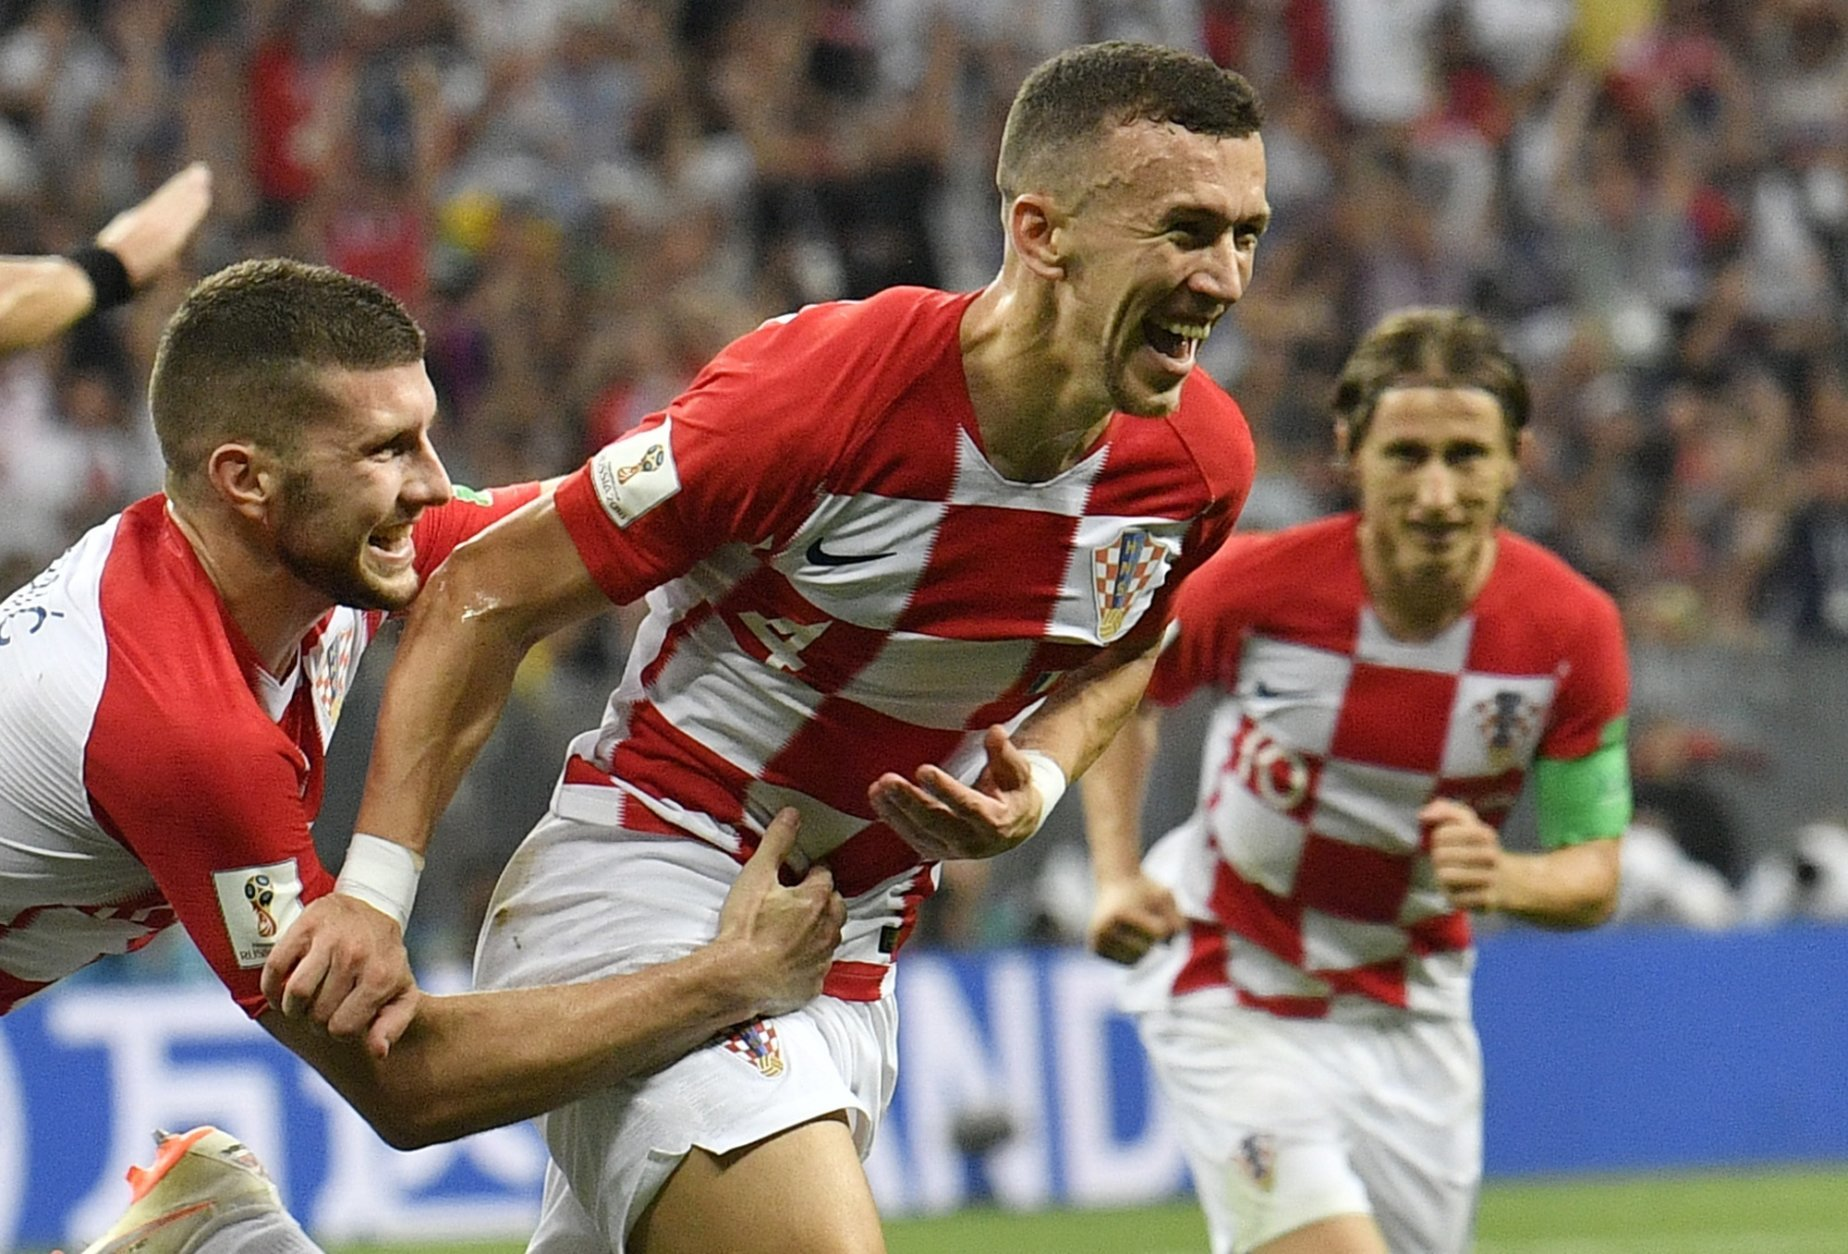 Croatia's Ivan Perisic, center, celebrates after scoring his side's opening goal during the final match between France and Croatia at the 2018 soccer World Cup in the Luzhniki Stadium in Moscow, Russia, Sunday, July 15, 2018. (AP Photo/Martin Meissner)